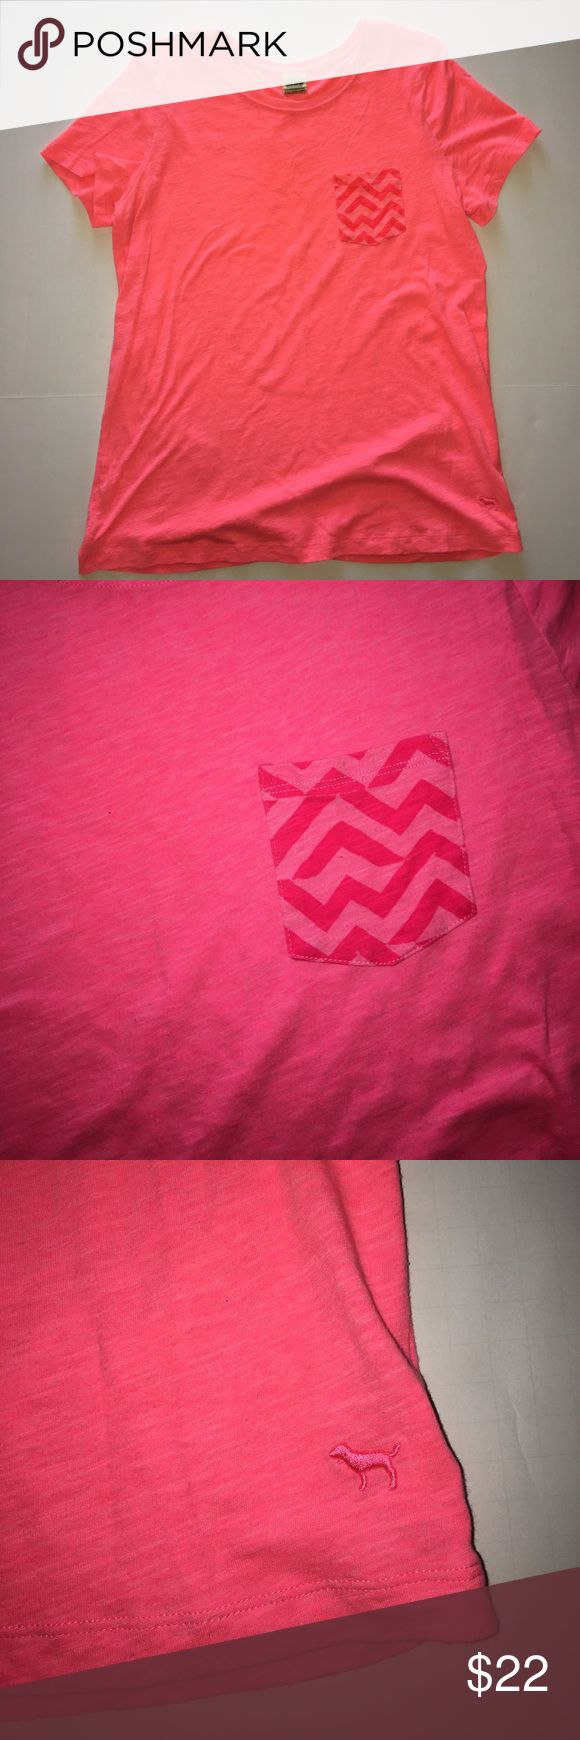 Victoria's Secret PINK T Shirt w/ Chevron Pocket M Excellent used condition. Size Medium. PINK Victoria's Secret Tops Tees - Short Sleeve